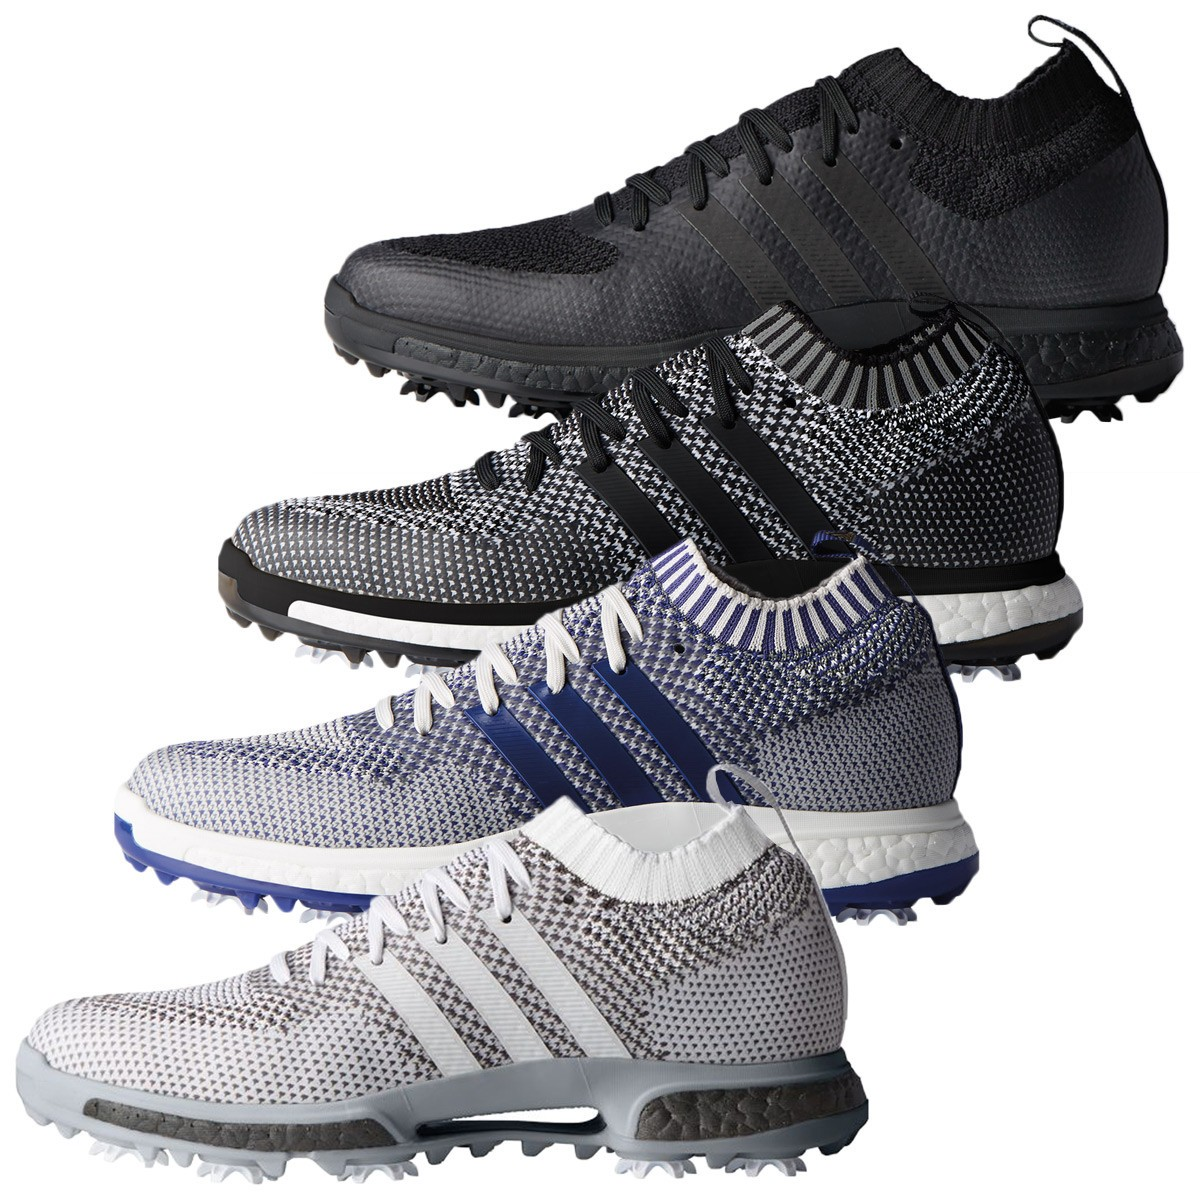 dddc86c5abde SHARE THIS ITEM WITH YOUR FRIENDS. Watch video Size Guide. Description   Technology  Reviews0. Description. The adidas Mens Tour360 Knit Golf Shoes  ...